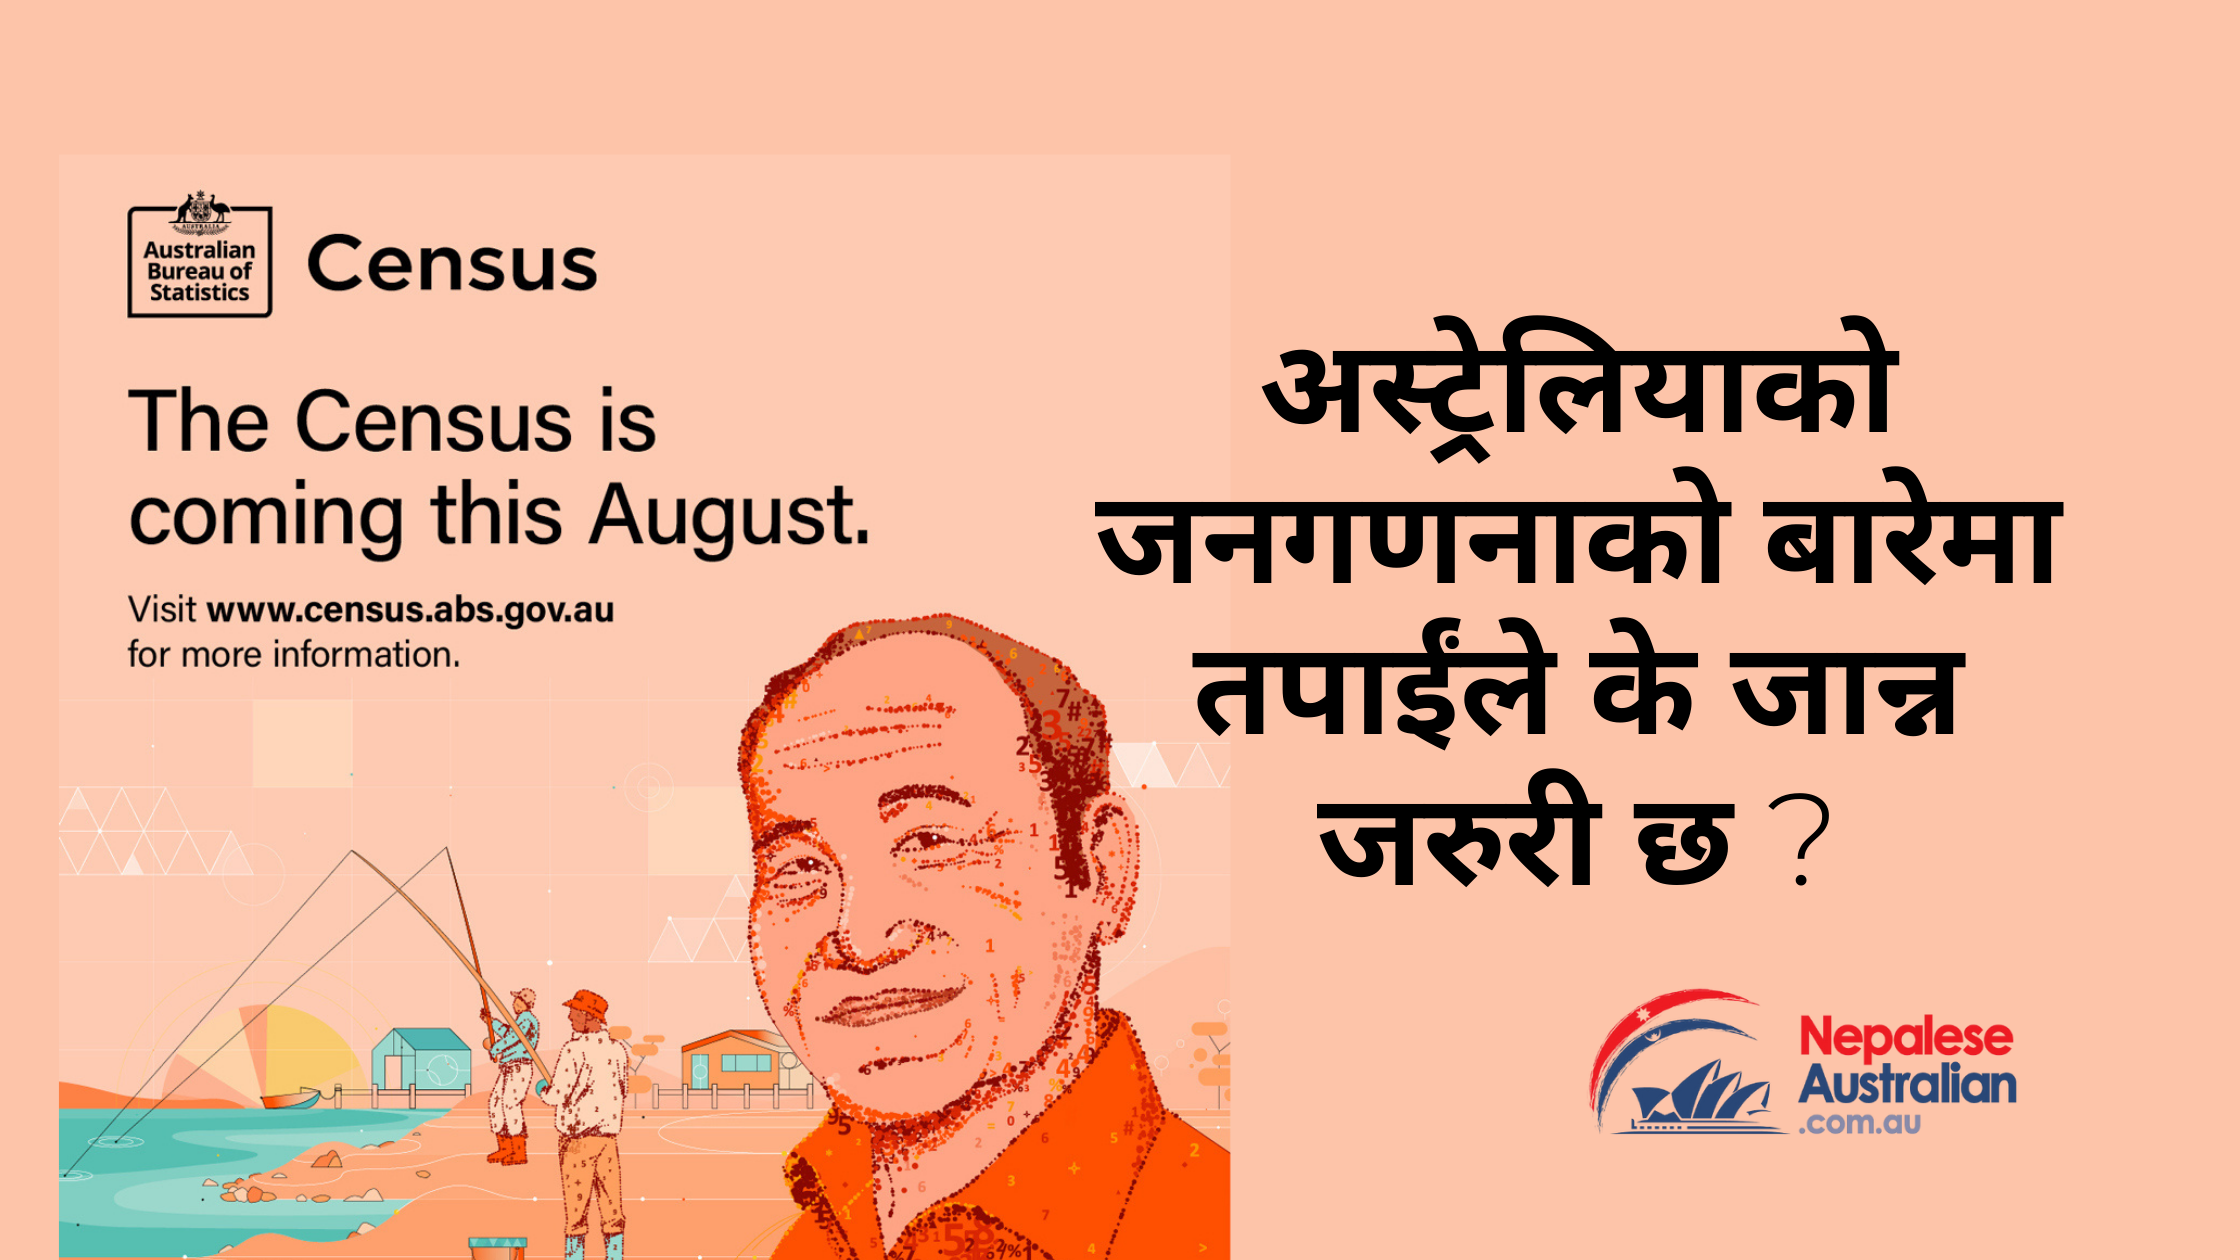 The Census is happening in August for use in August 10